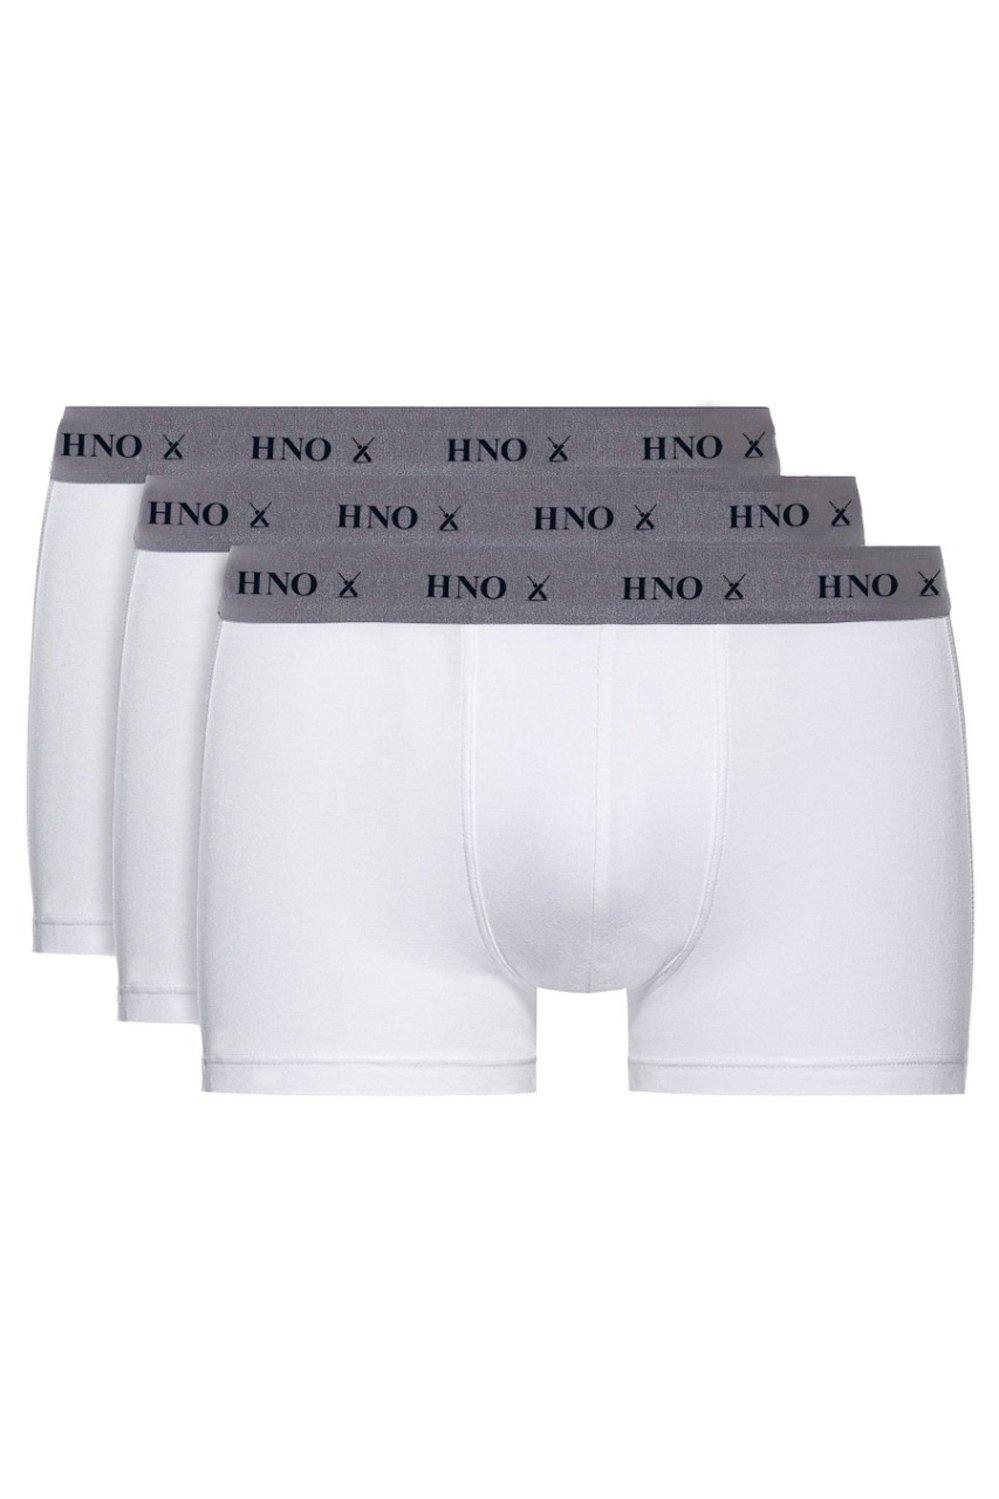 White Underwear Pack of 3 HMUBF20002 - HOPE NOT OUT